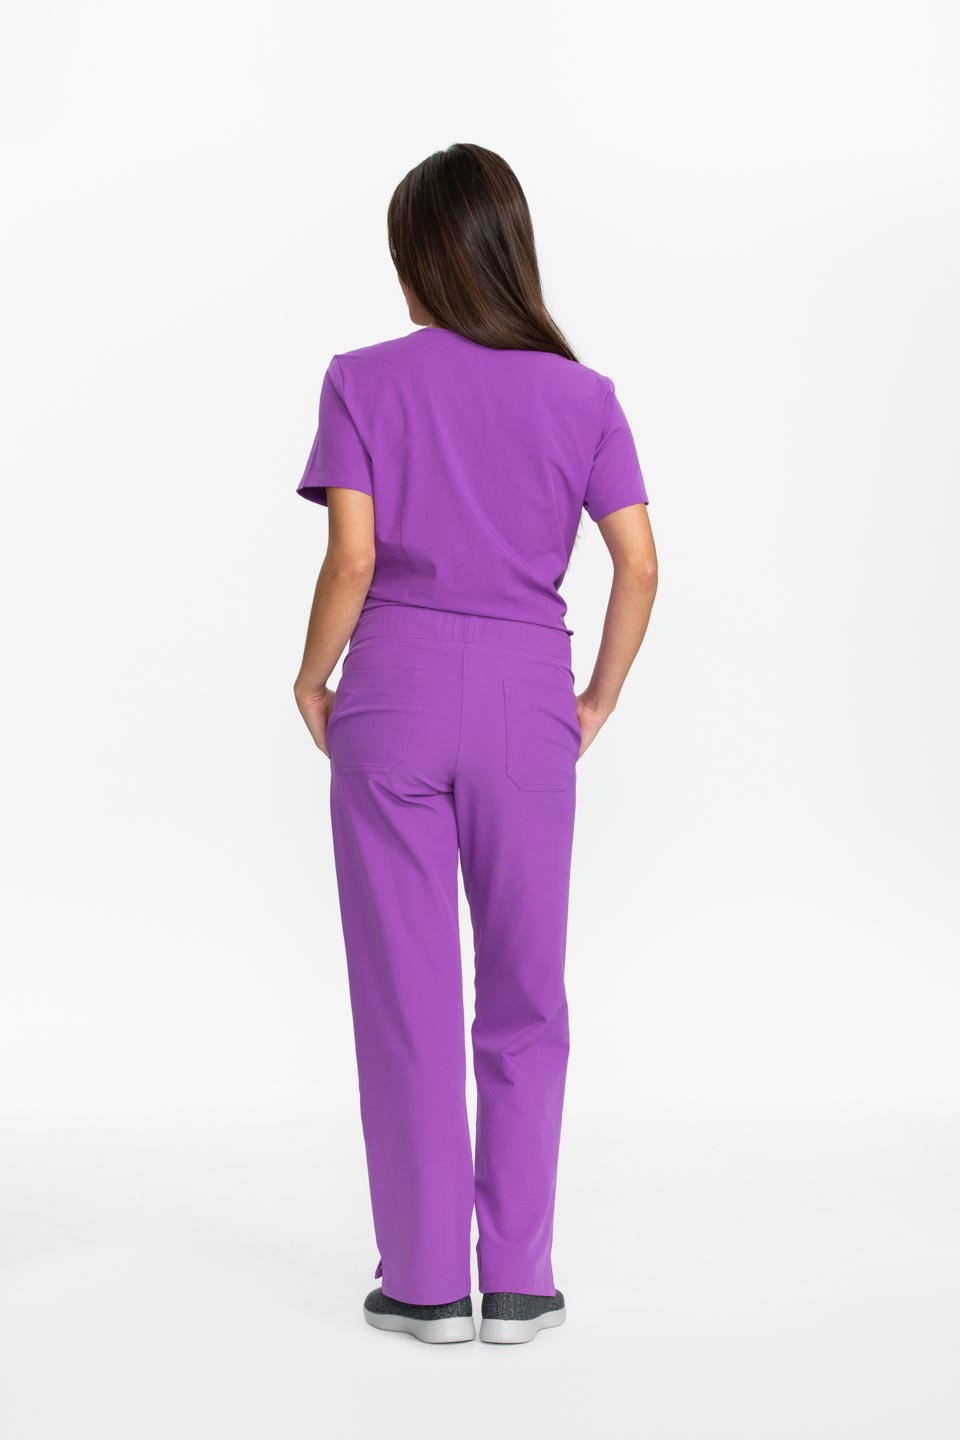 Kalea - Womens Bliss Scrub Pants - Purple